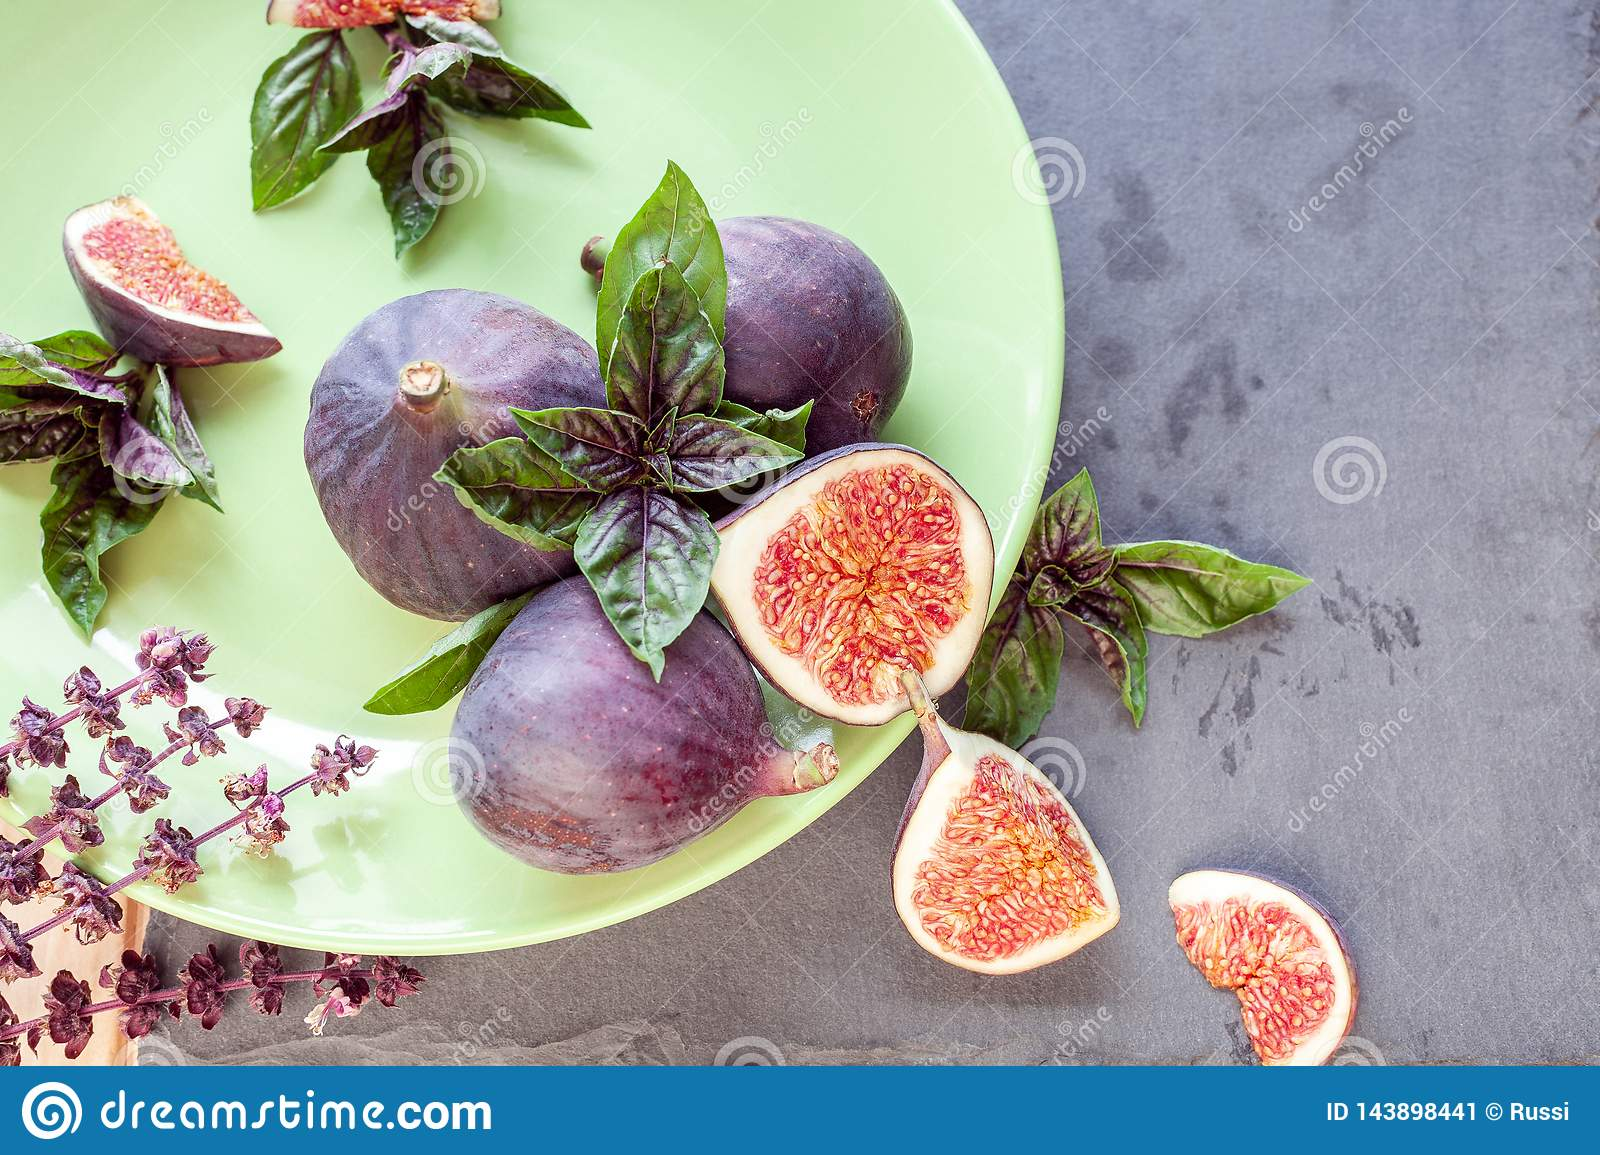 Sliced figs with basil